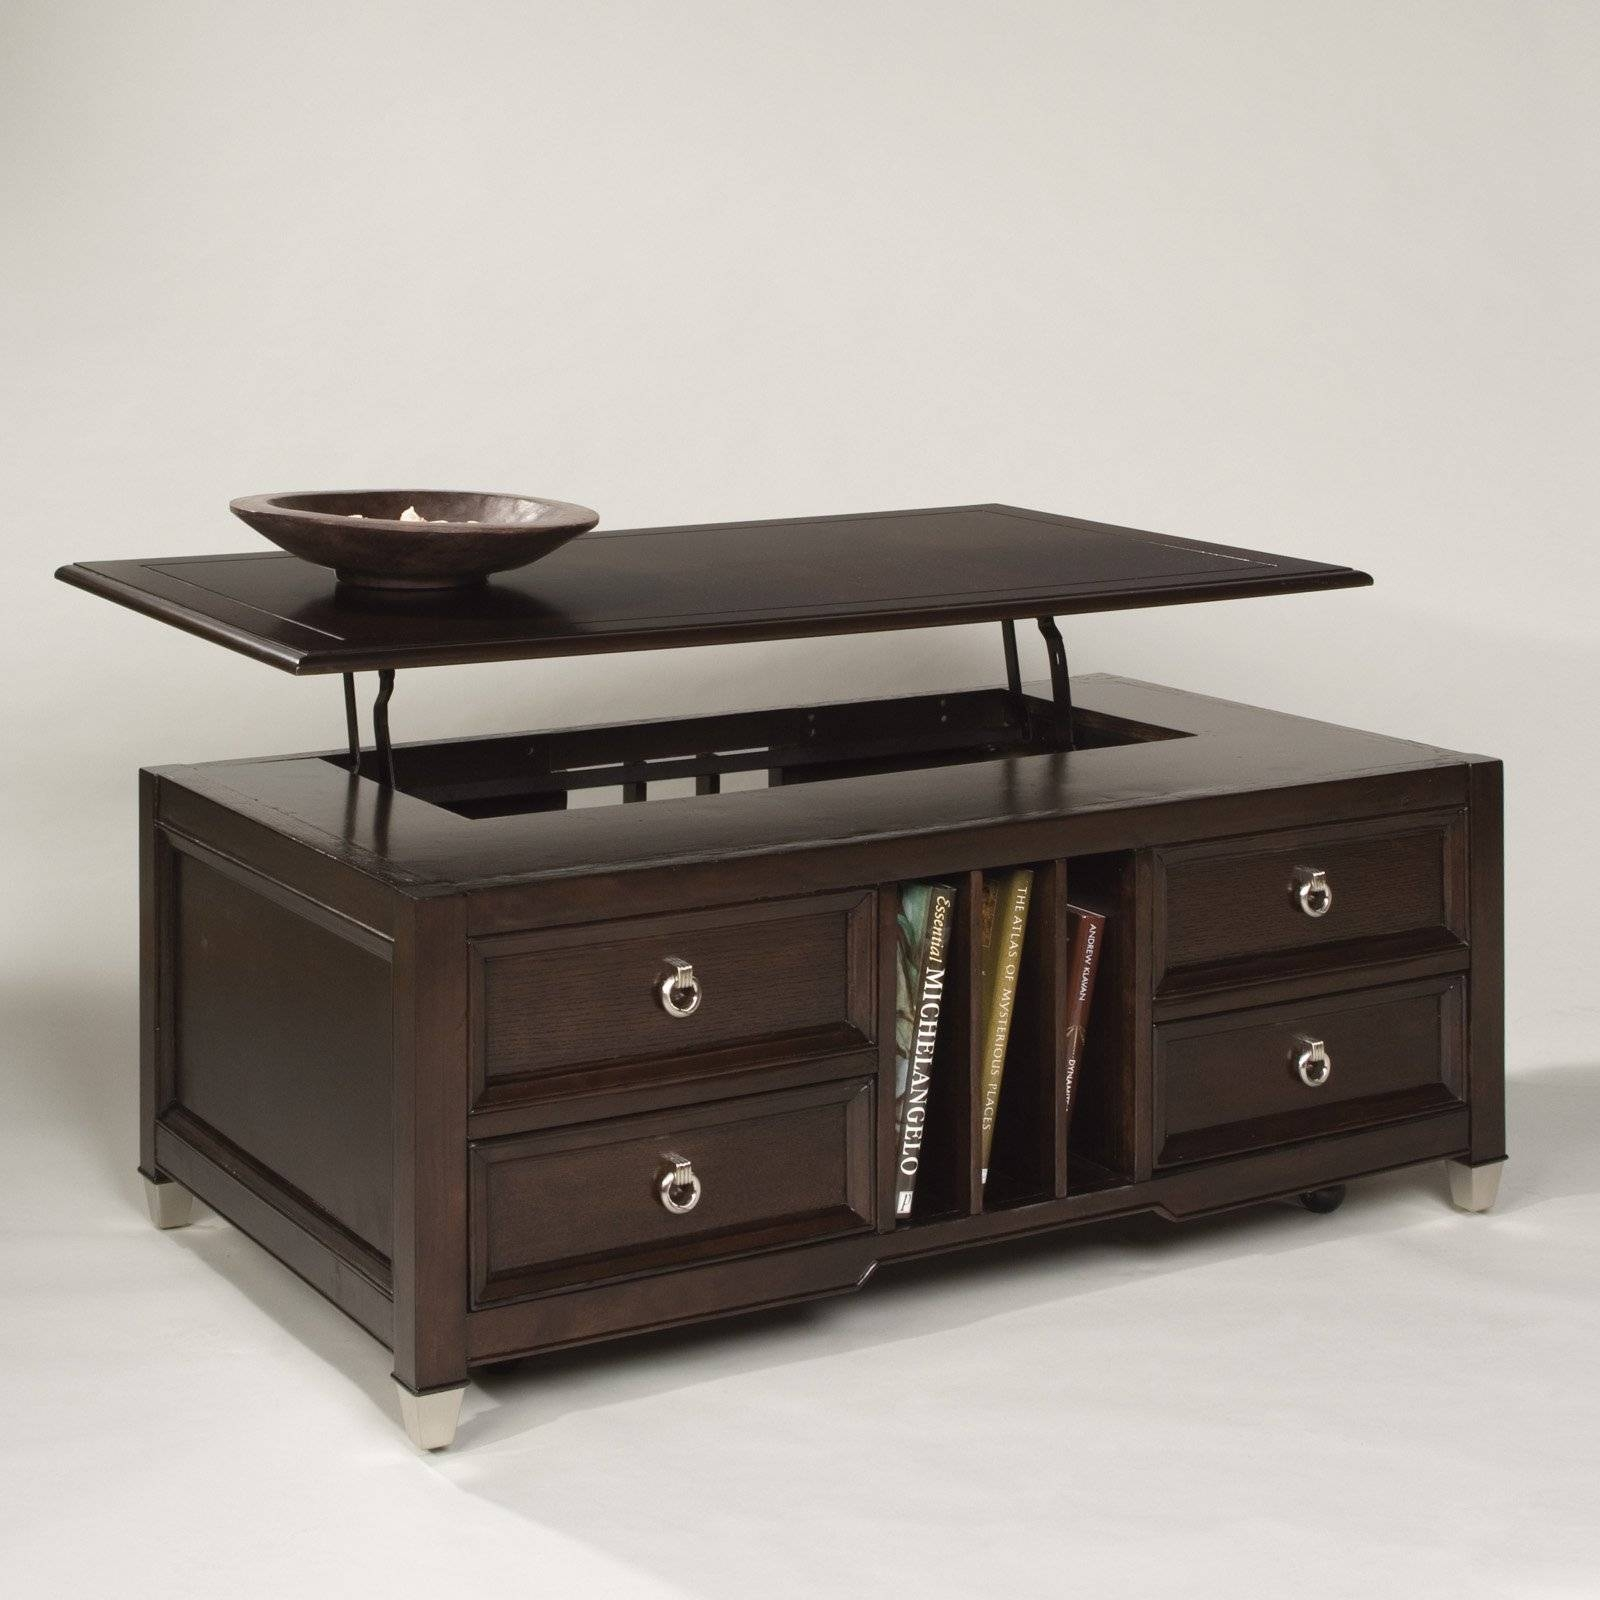 Magnussen T1124 Darien Wood Lift Top Coffee Table - Coffee Tables throughout Coffee Tables Top Lifts Up (Image 16 of 30)